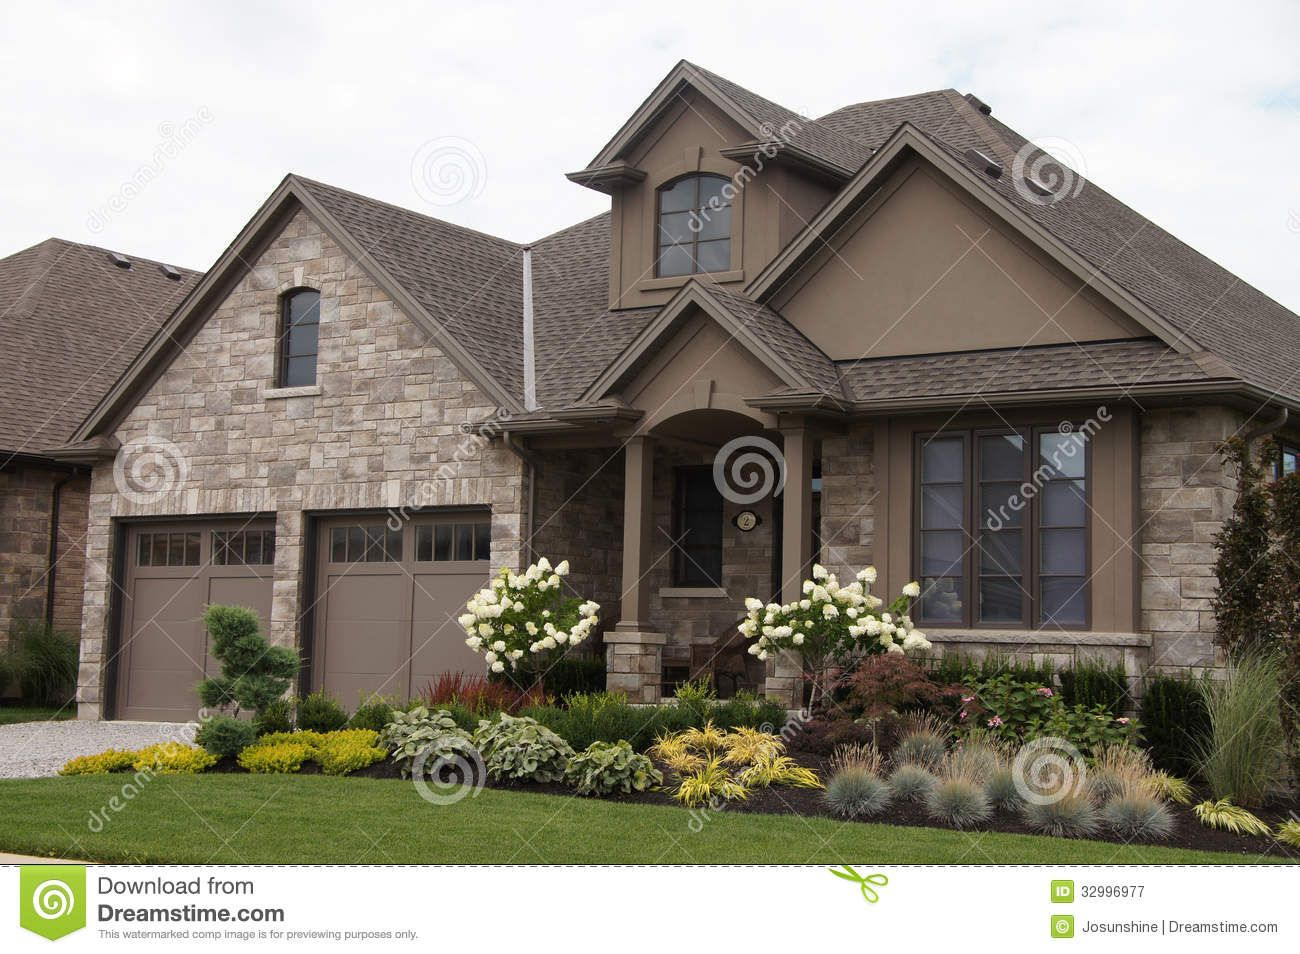 Stucco homes stucco stone house pretty garden royalty for Stone and brick home designs